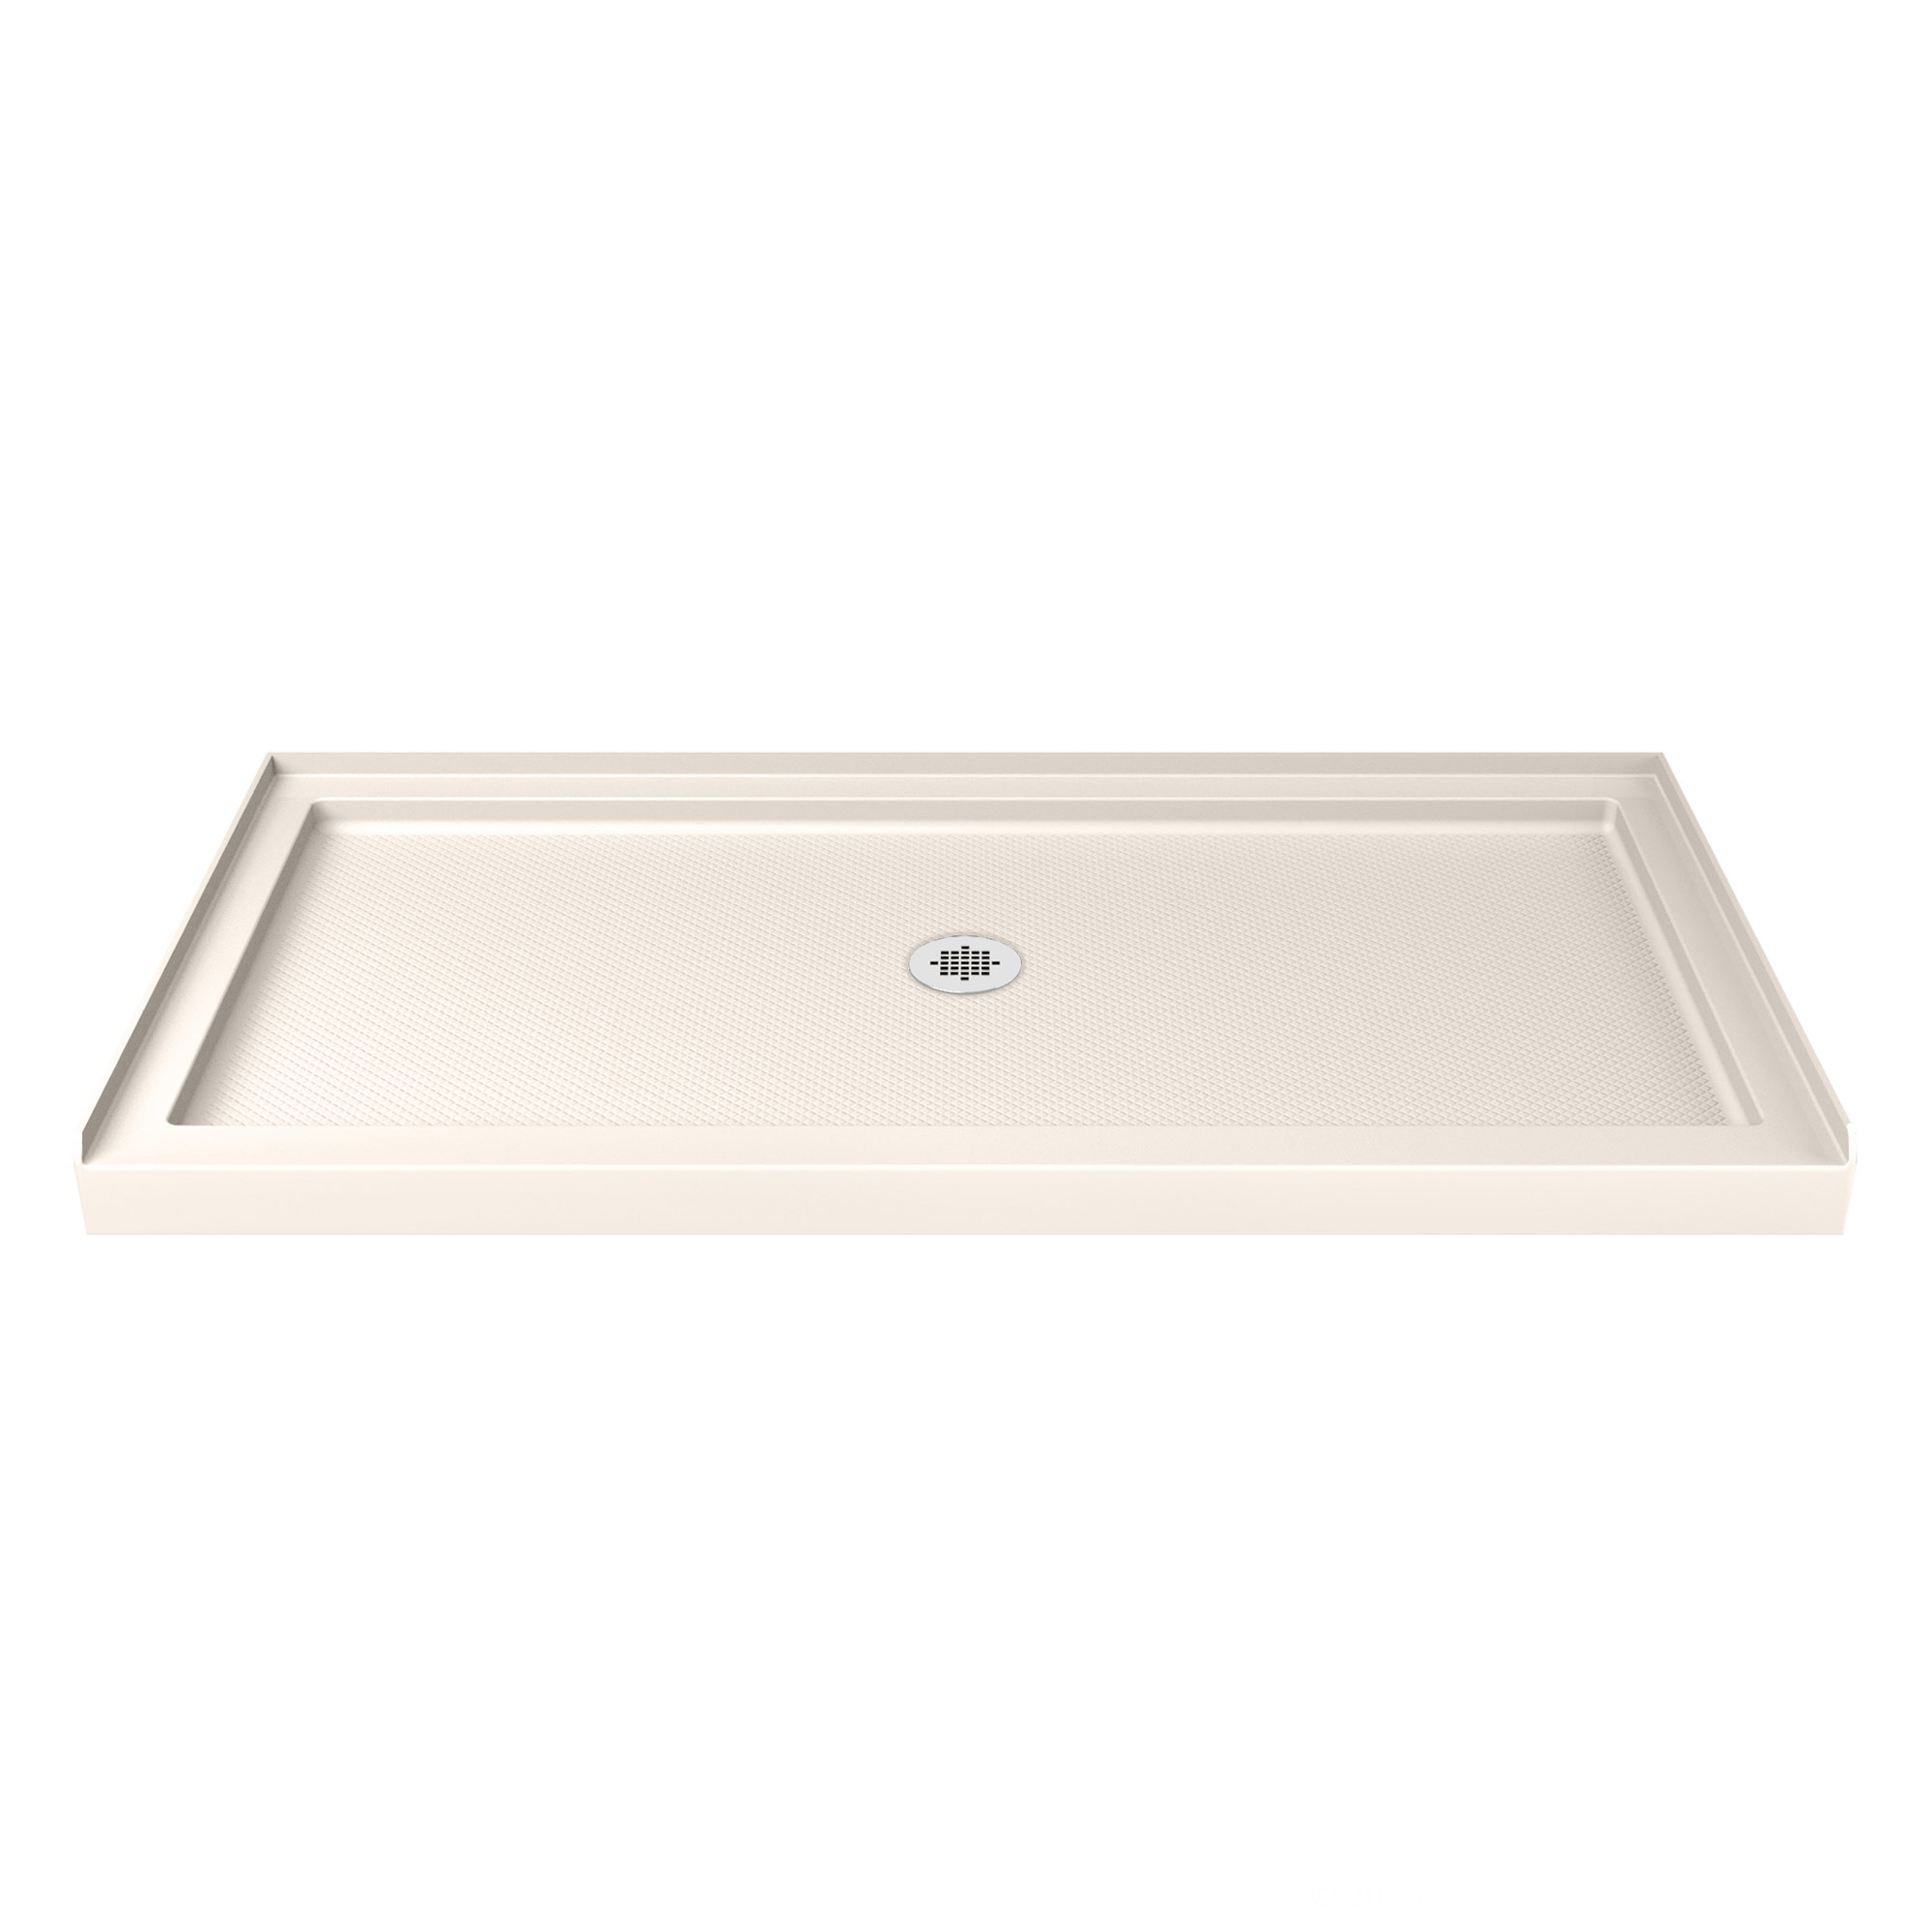 DreamLine SlimLine 30 in. D x 60 in. W x 2 3/4 in. H Right Drain Single Threshold Shower Base in White